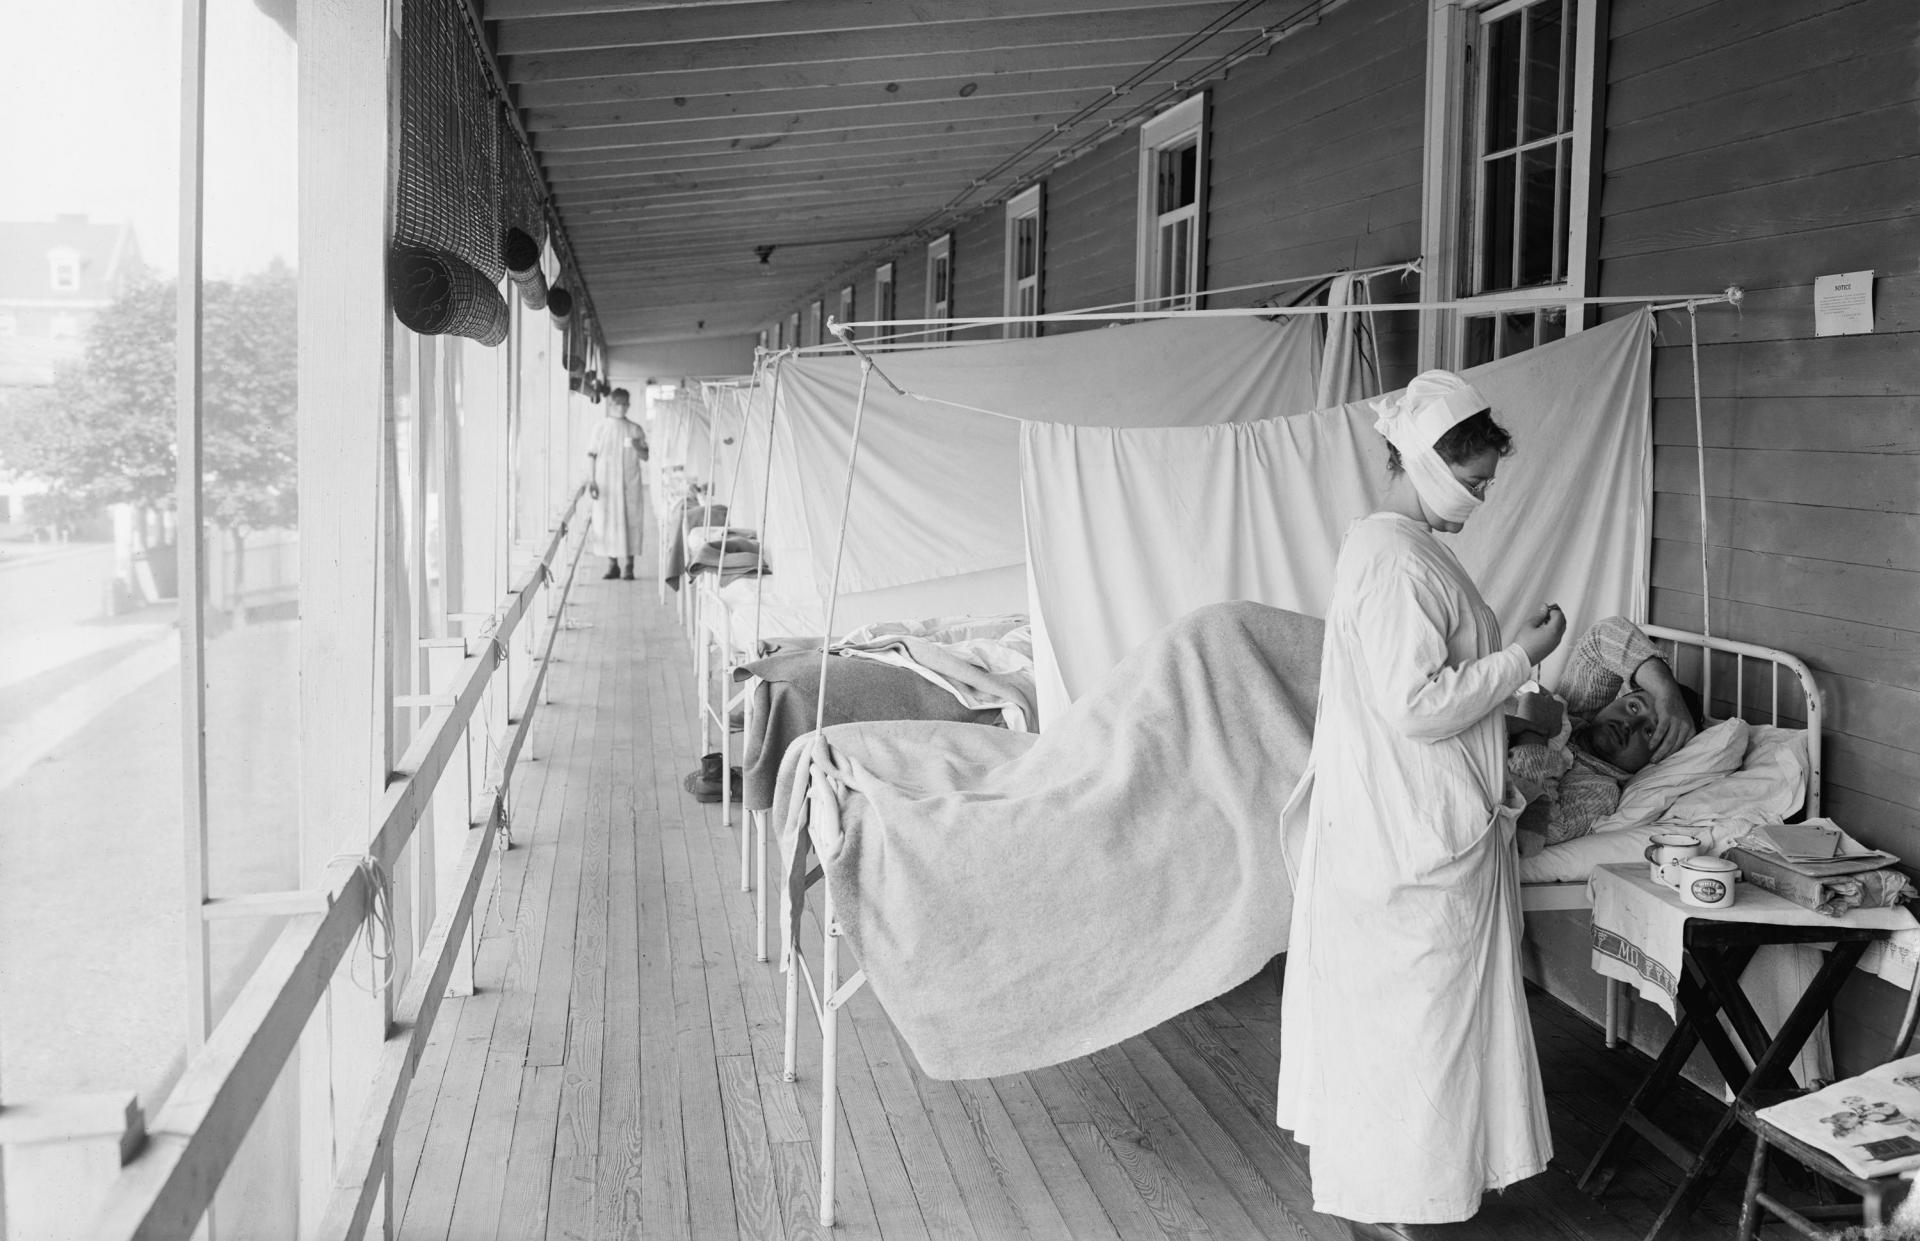 The The Walter Reed Hospital flu ward during the Spanish Flu epidemic of 1918-19 in Washington DC. Photo: Shutterstock